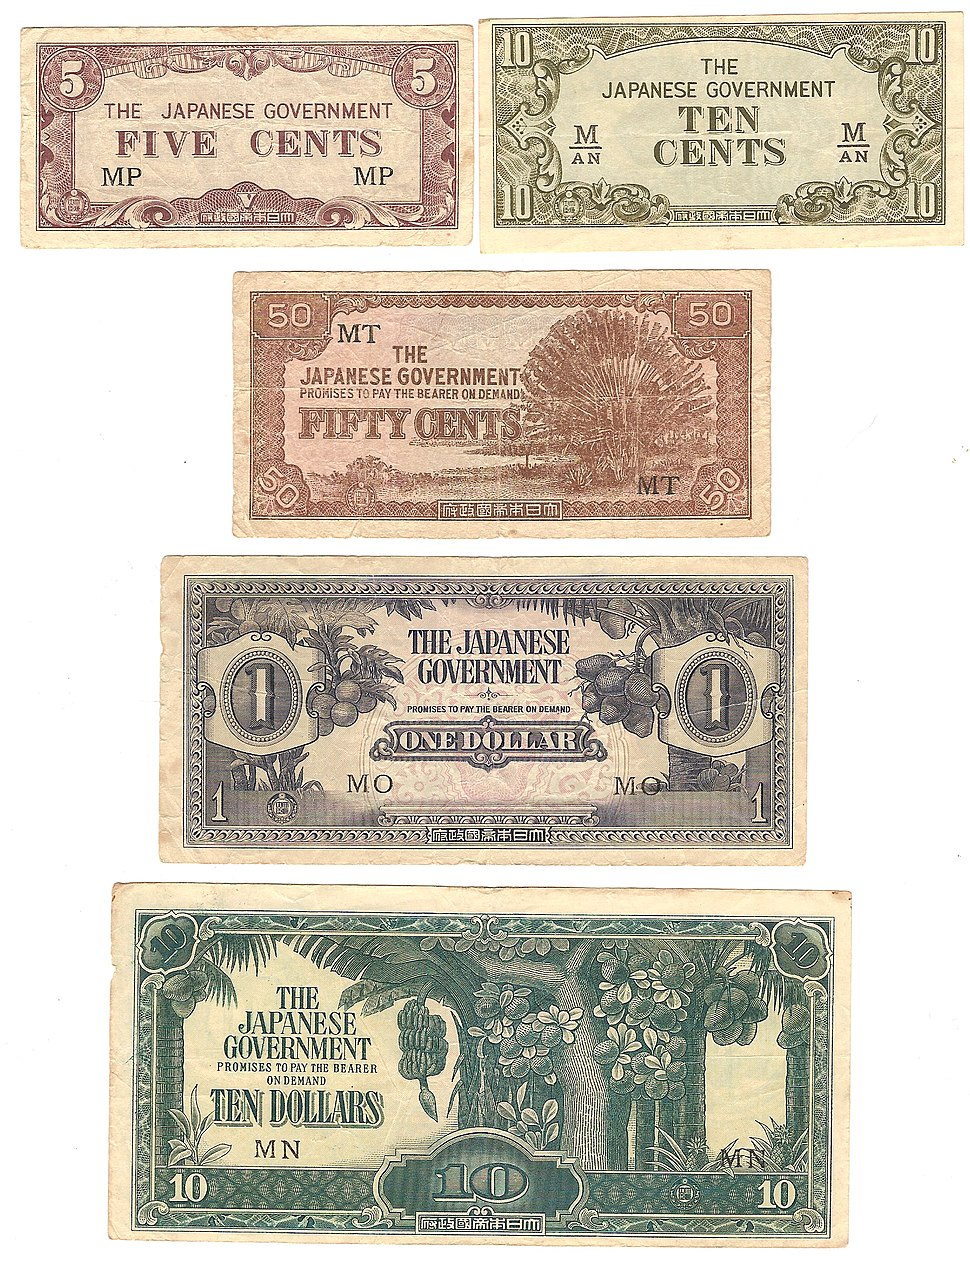 Notes issued by the Japanese Government during the occupation of Malaya, North Borneo, Sarawak and Brunei, used in Batu Lintang camp, Sarawak (1942–1945, obverse)